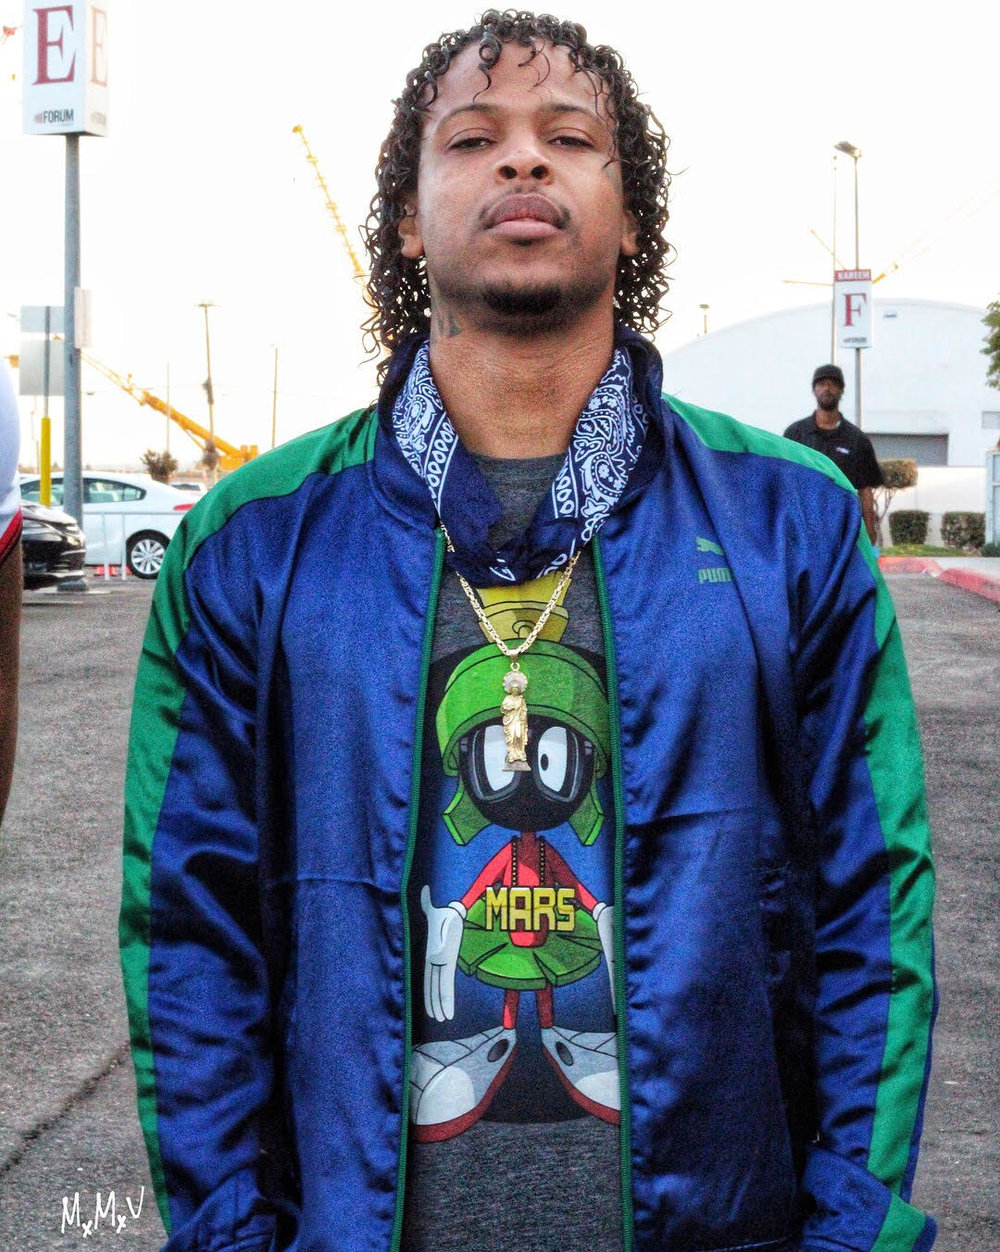 Photograph of G Perico taken by - MMV Shot